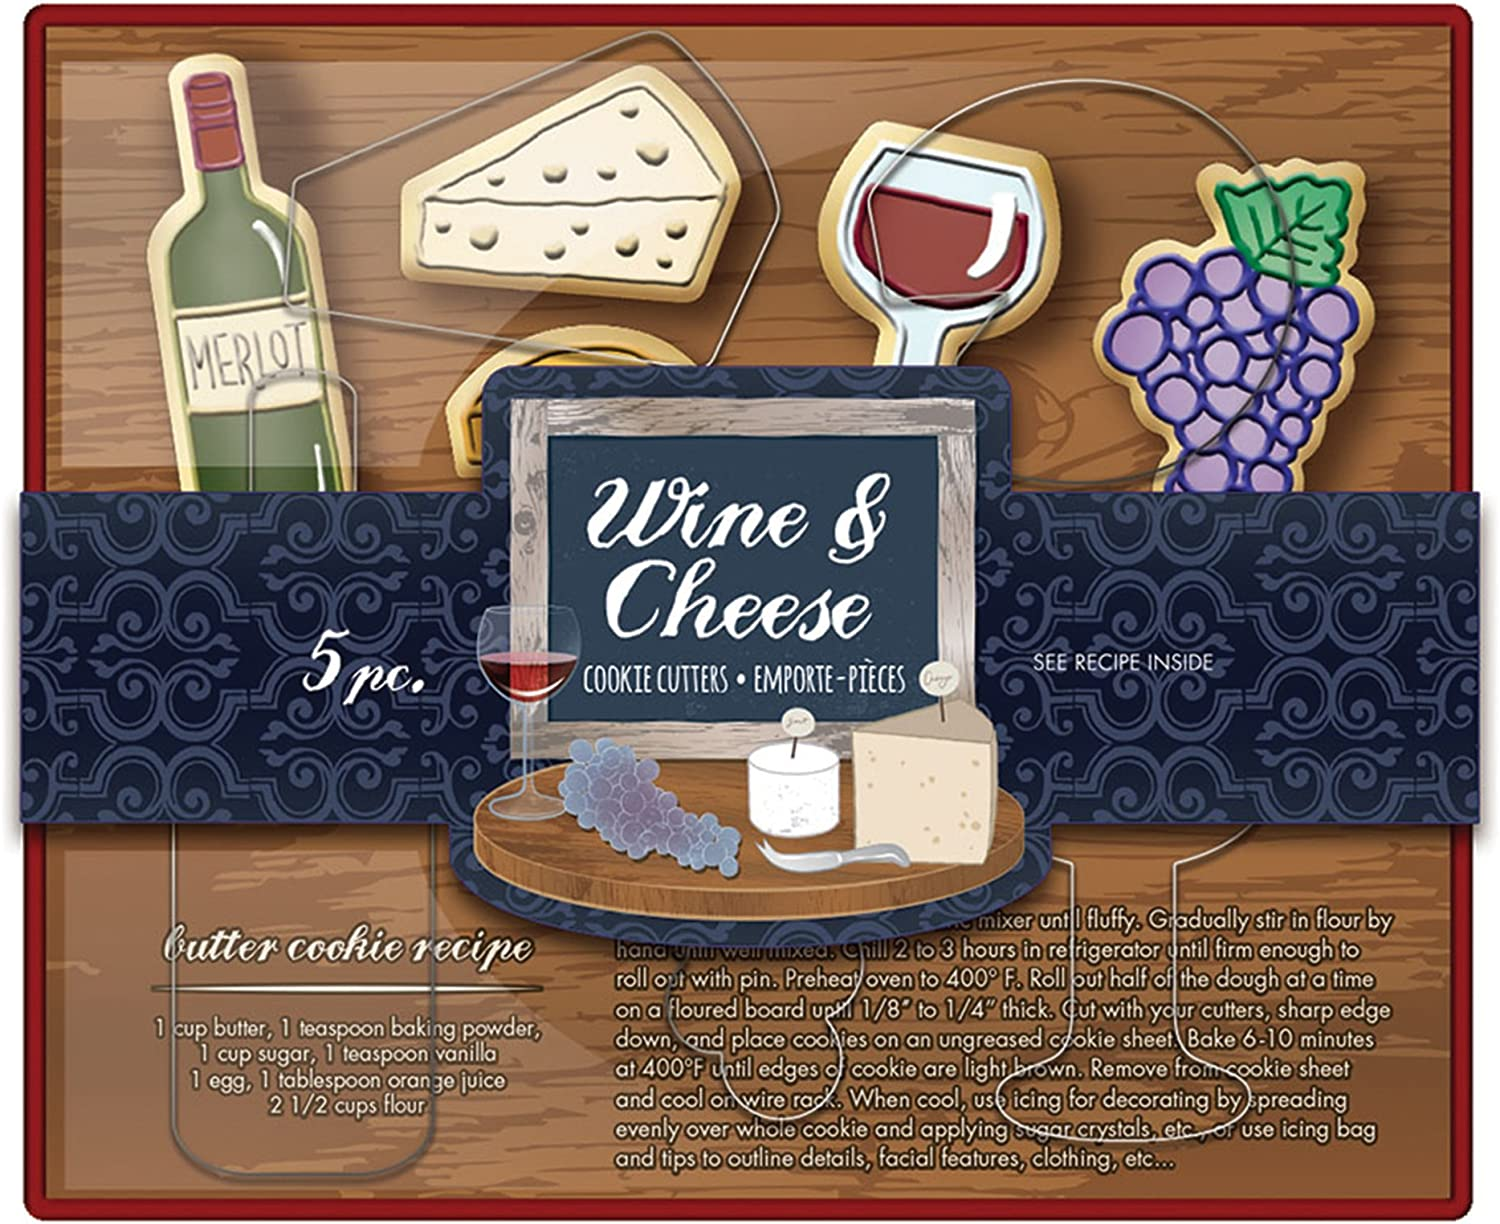 Fox Run Wine and Cheese Cookie cutters, 5.5 x 7.25 x 1.25 inches, Metallic